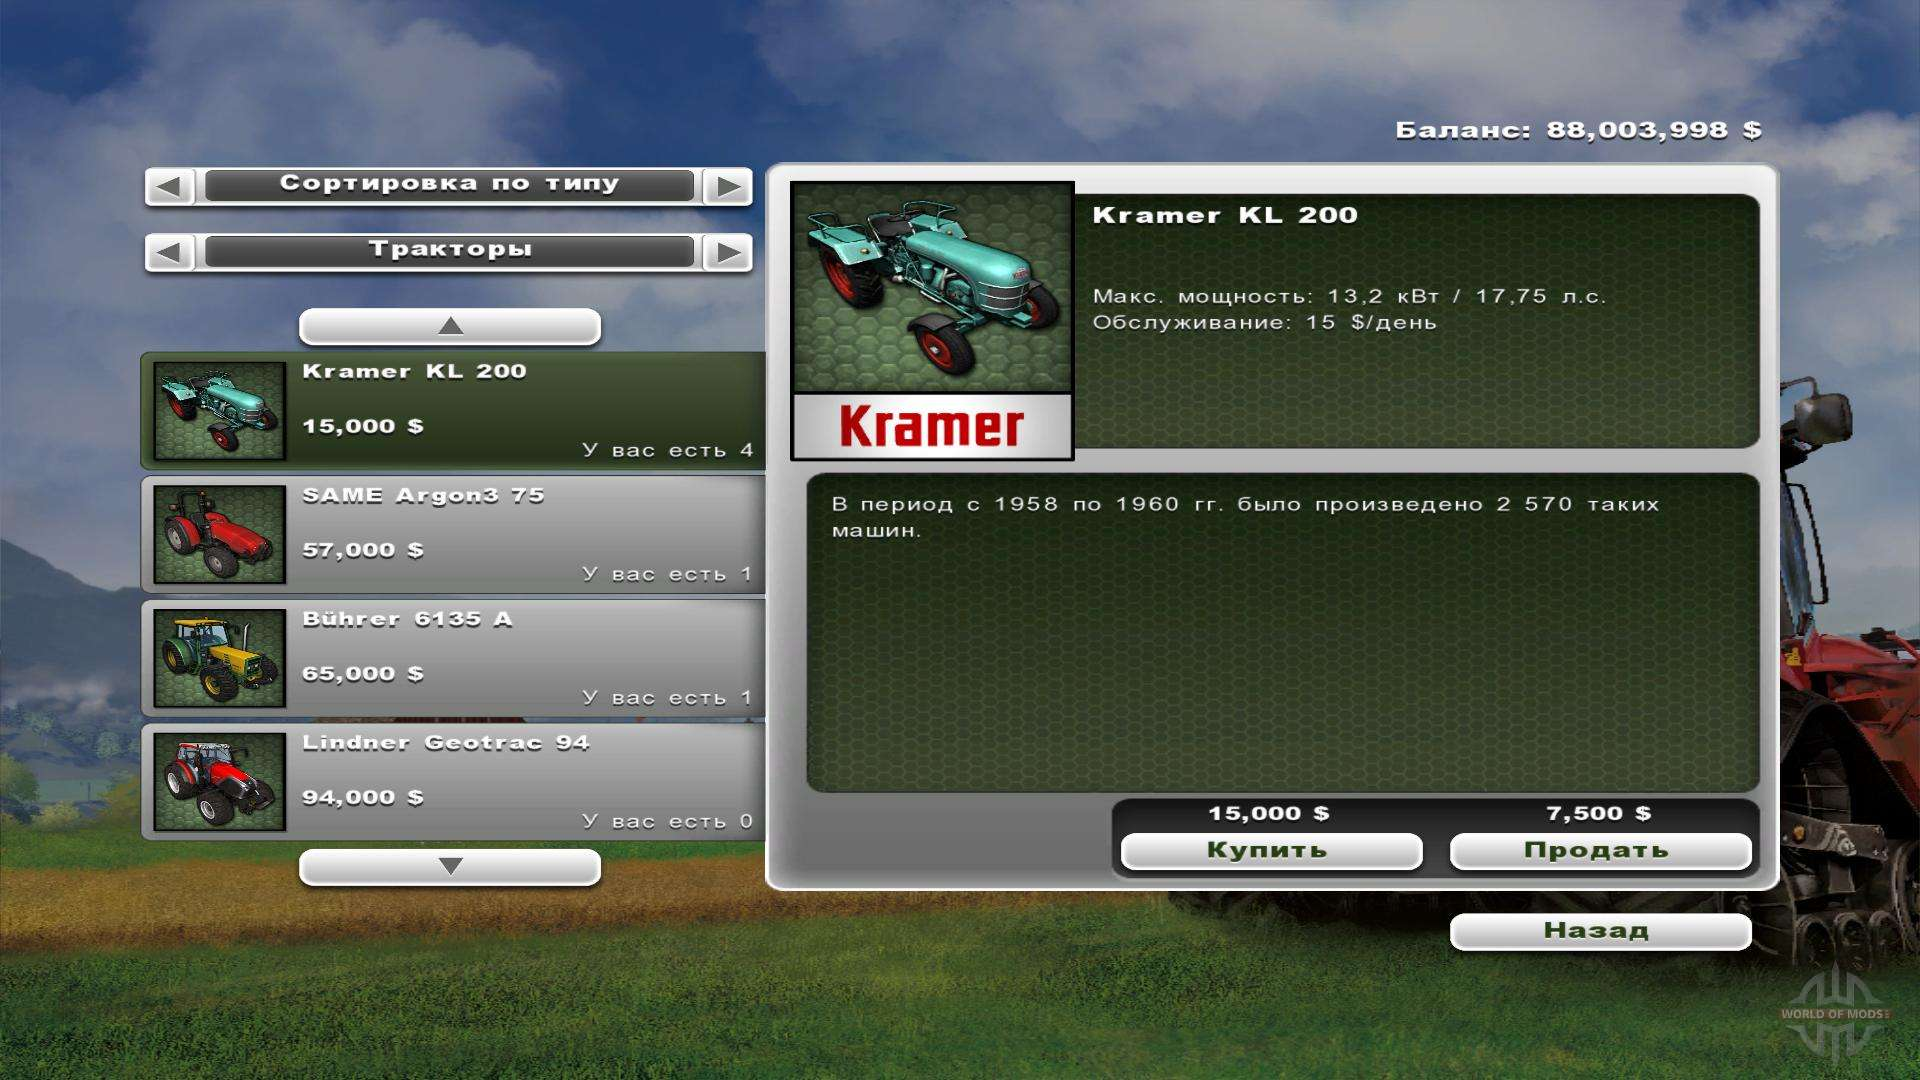 Мод на Farming Simulator 2013 на Деньги